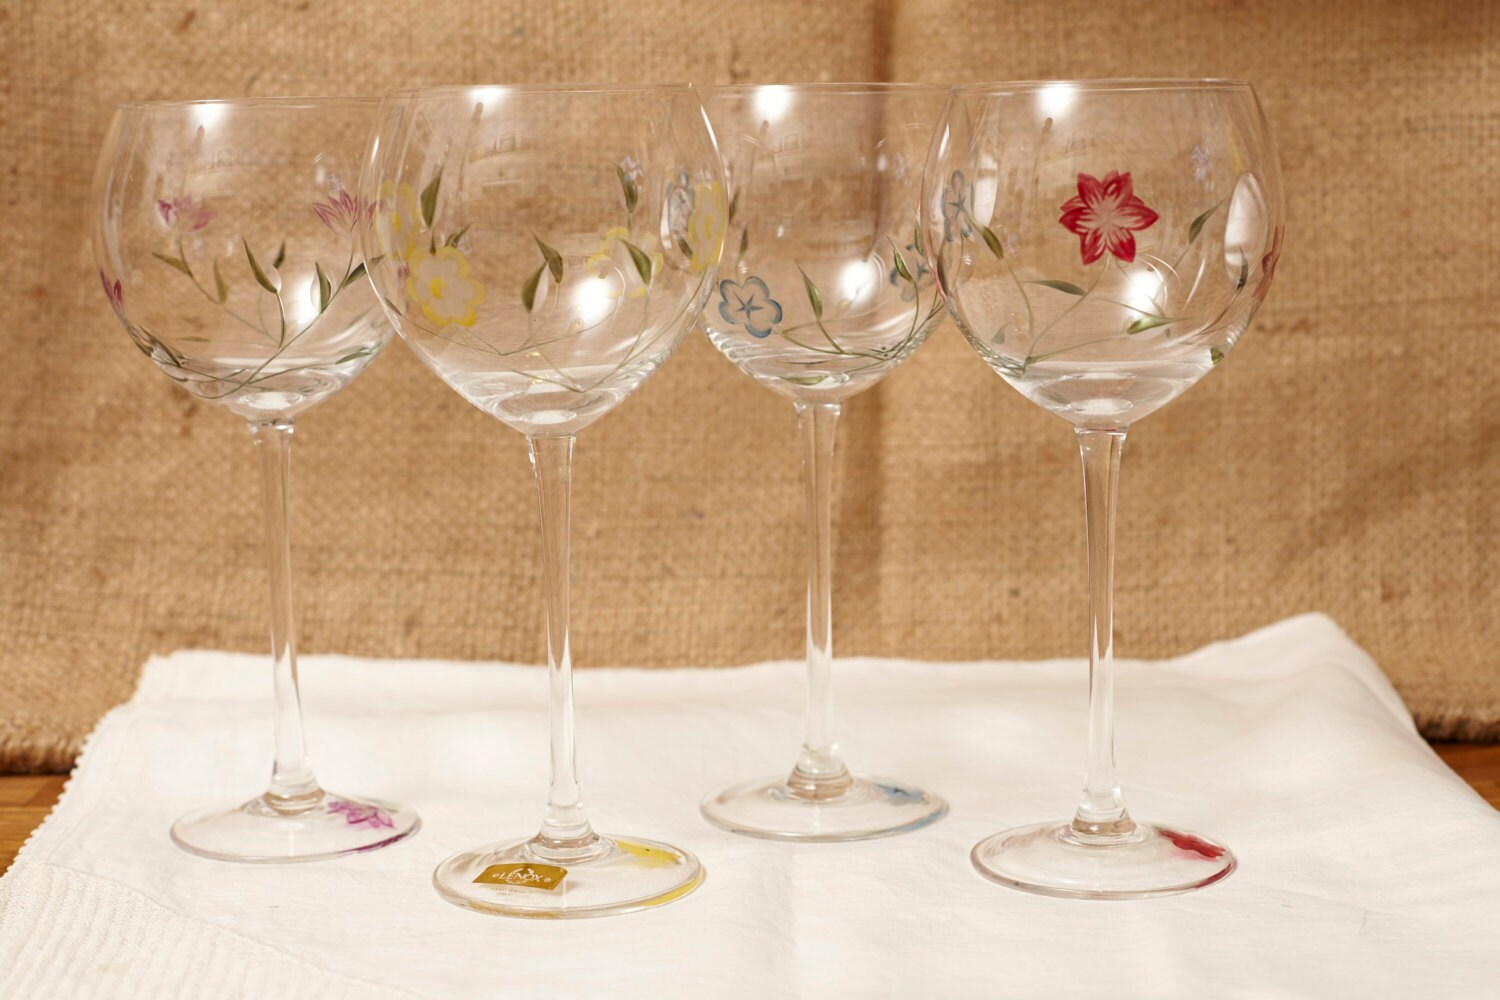 Lenox Cut Crystal Floral Spirit Balloon Wine Glass Set Hand